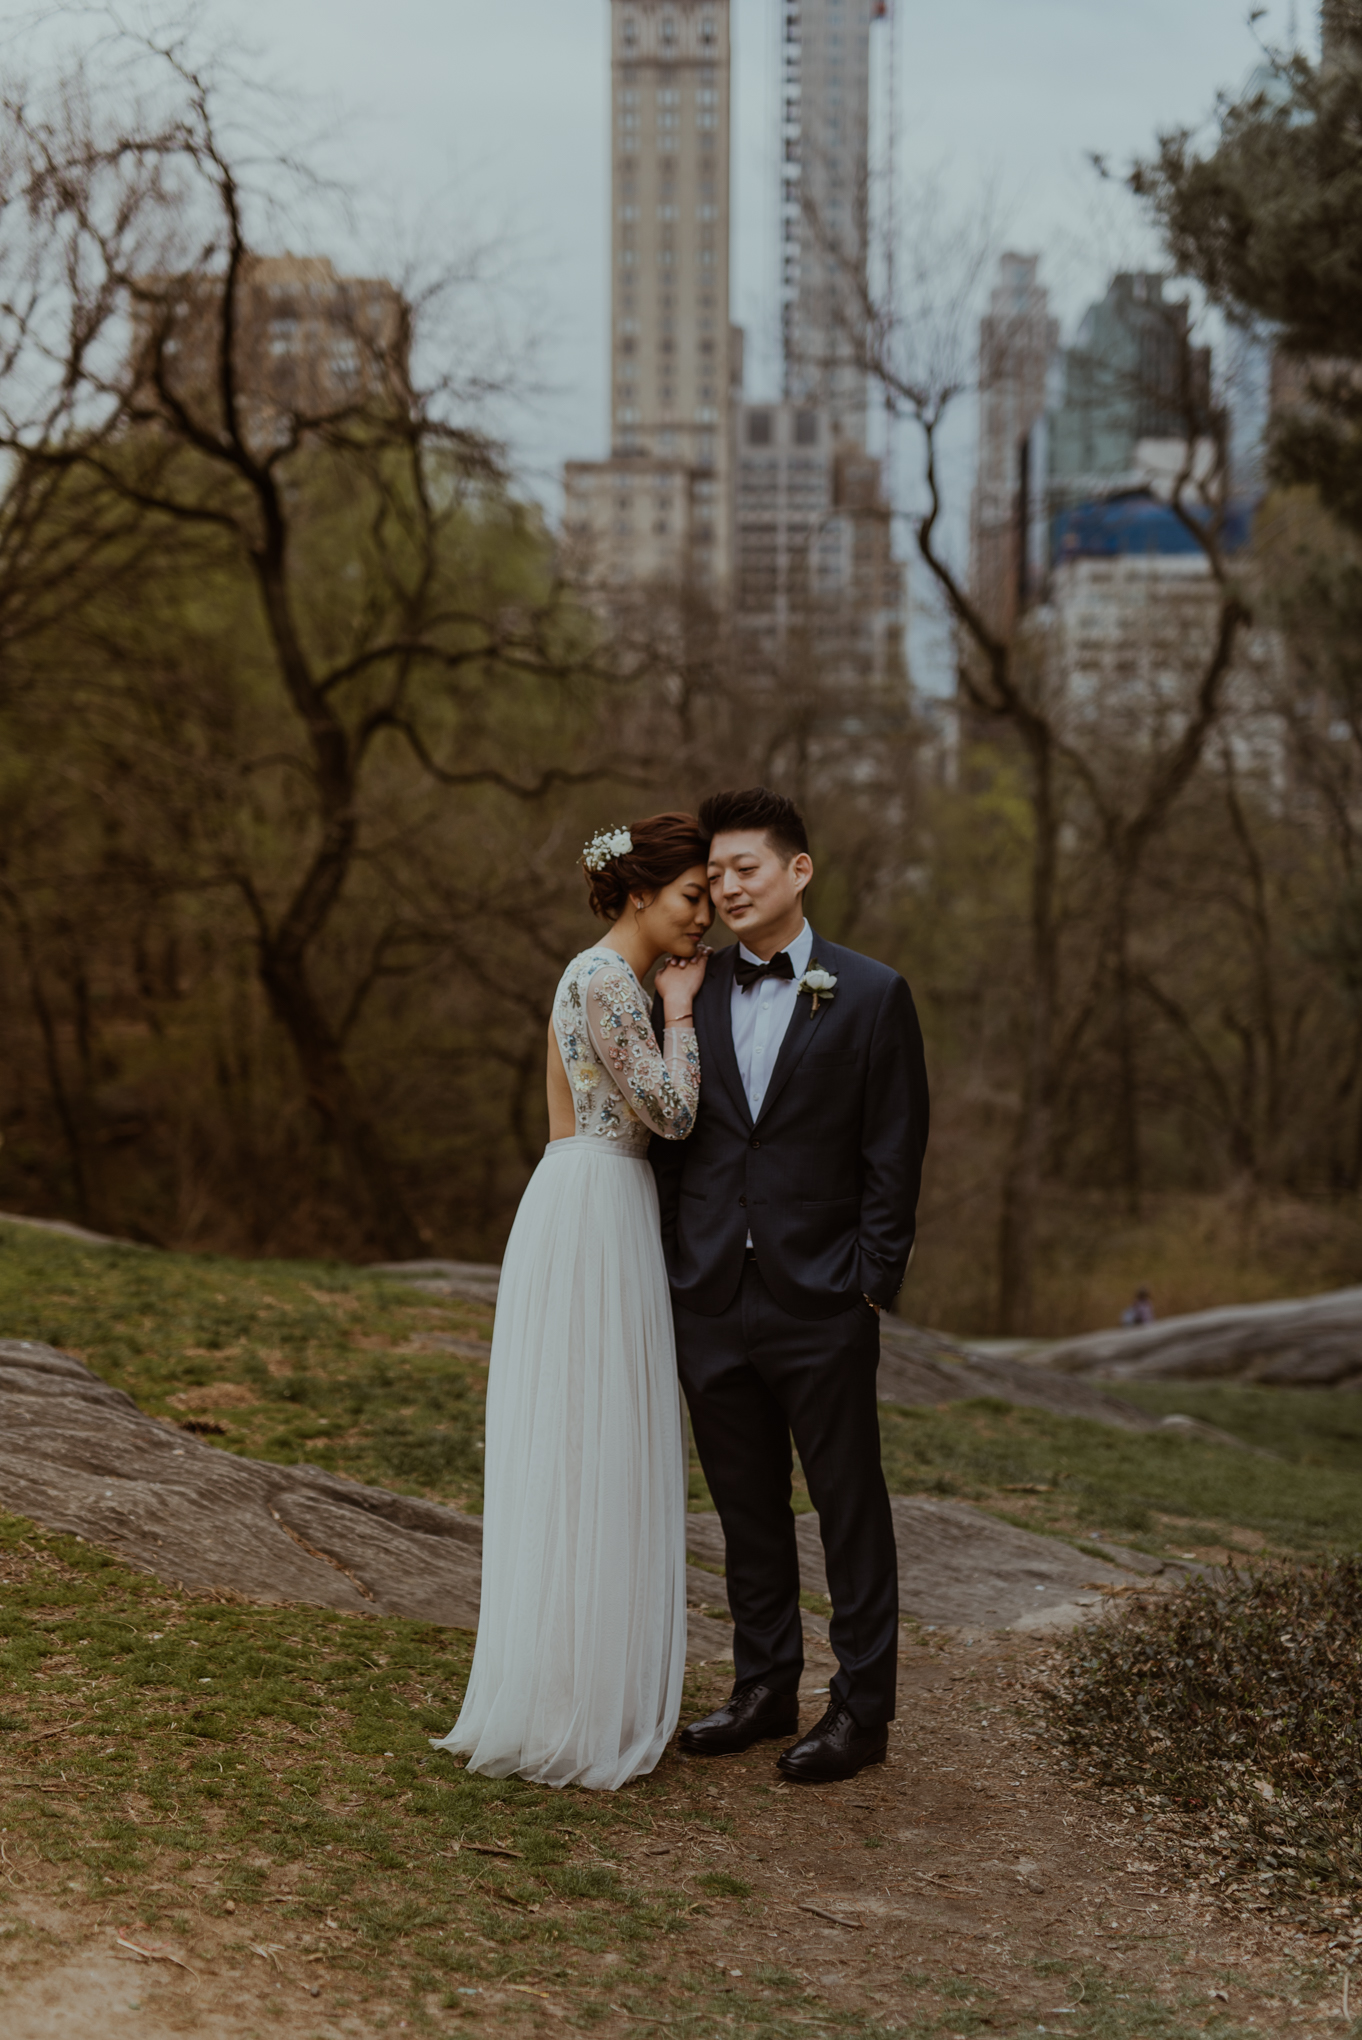 Central Park first kiss of bride and groom eloping in NYC